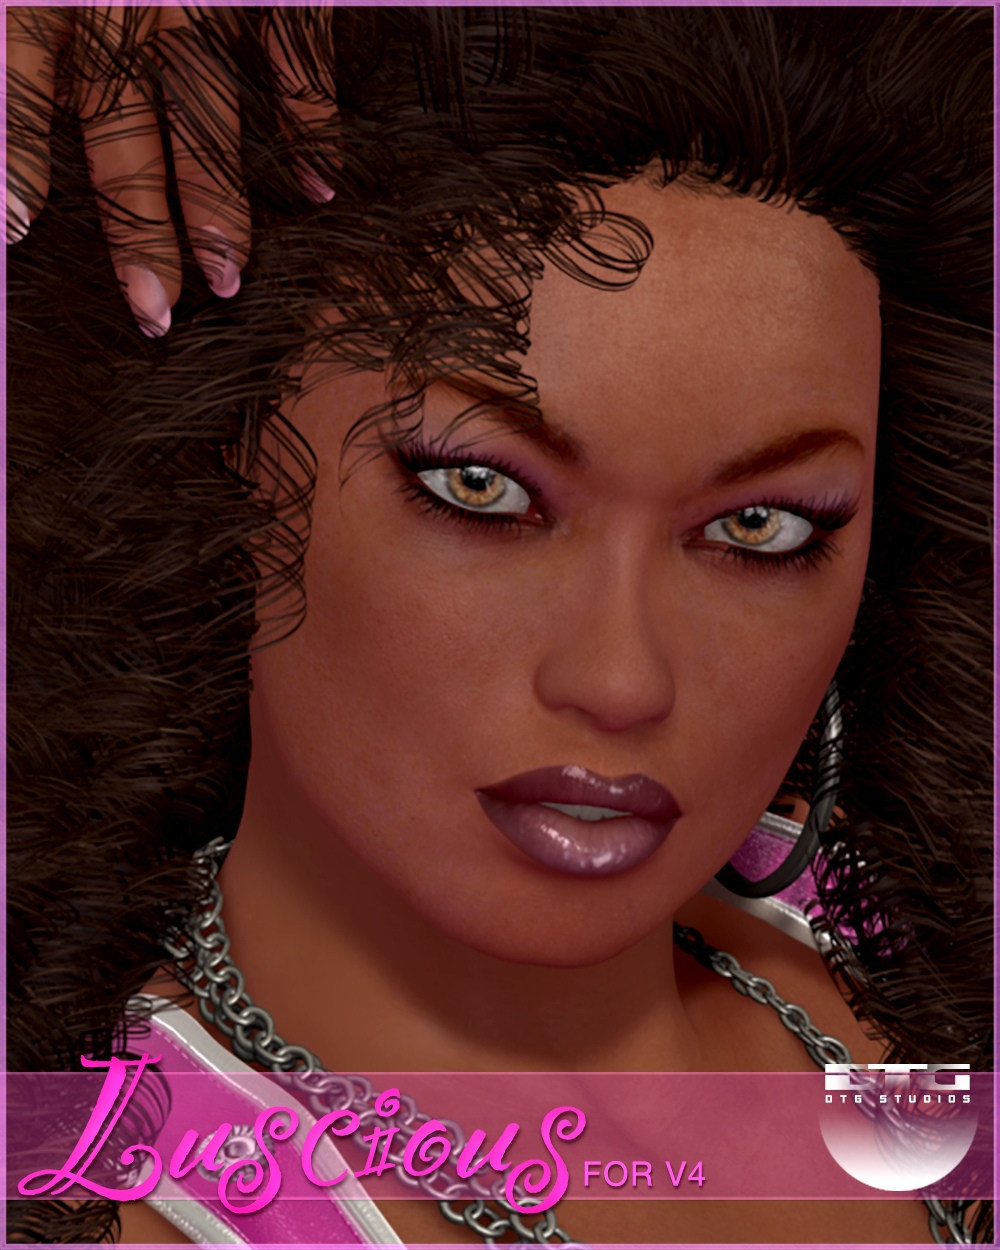 DTG Studios' Luscious for V4 by DTHUREGRIF